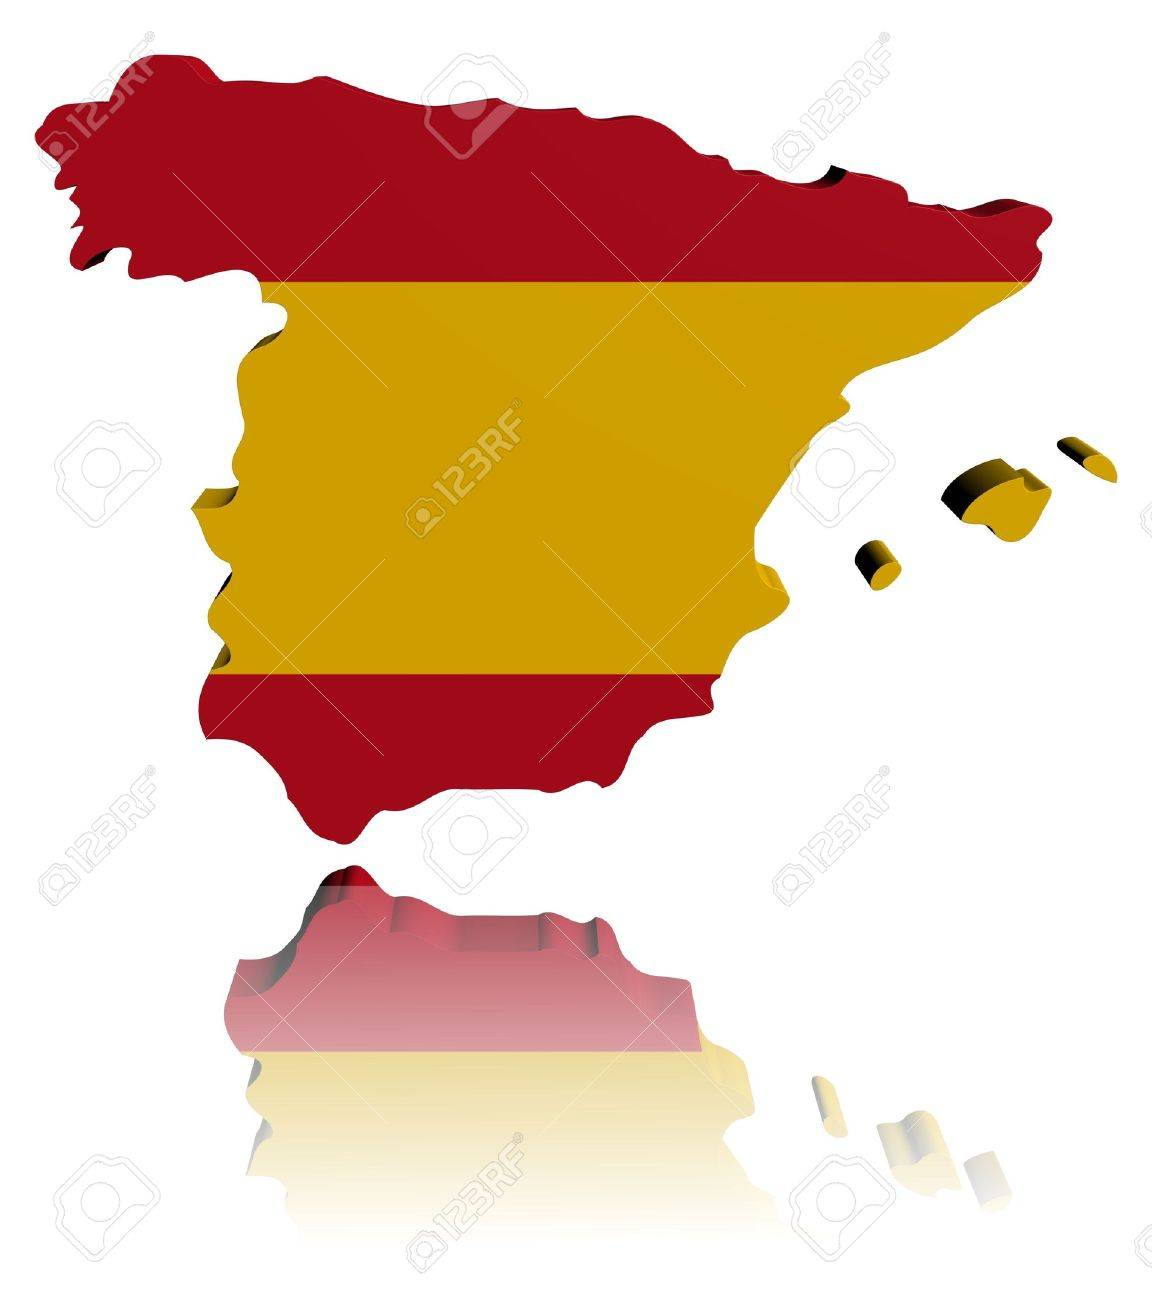 Spain Map Flag.Spain Map Flag 3d Render With Reflection Illustration